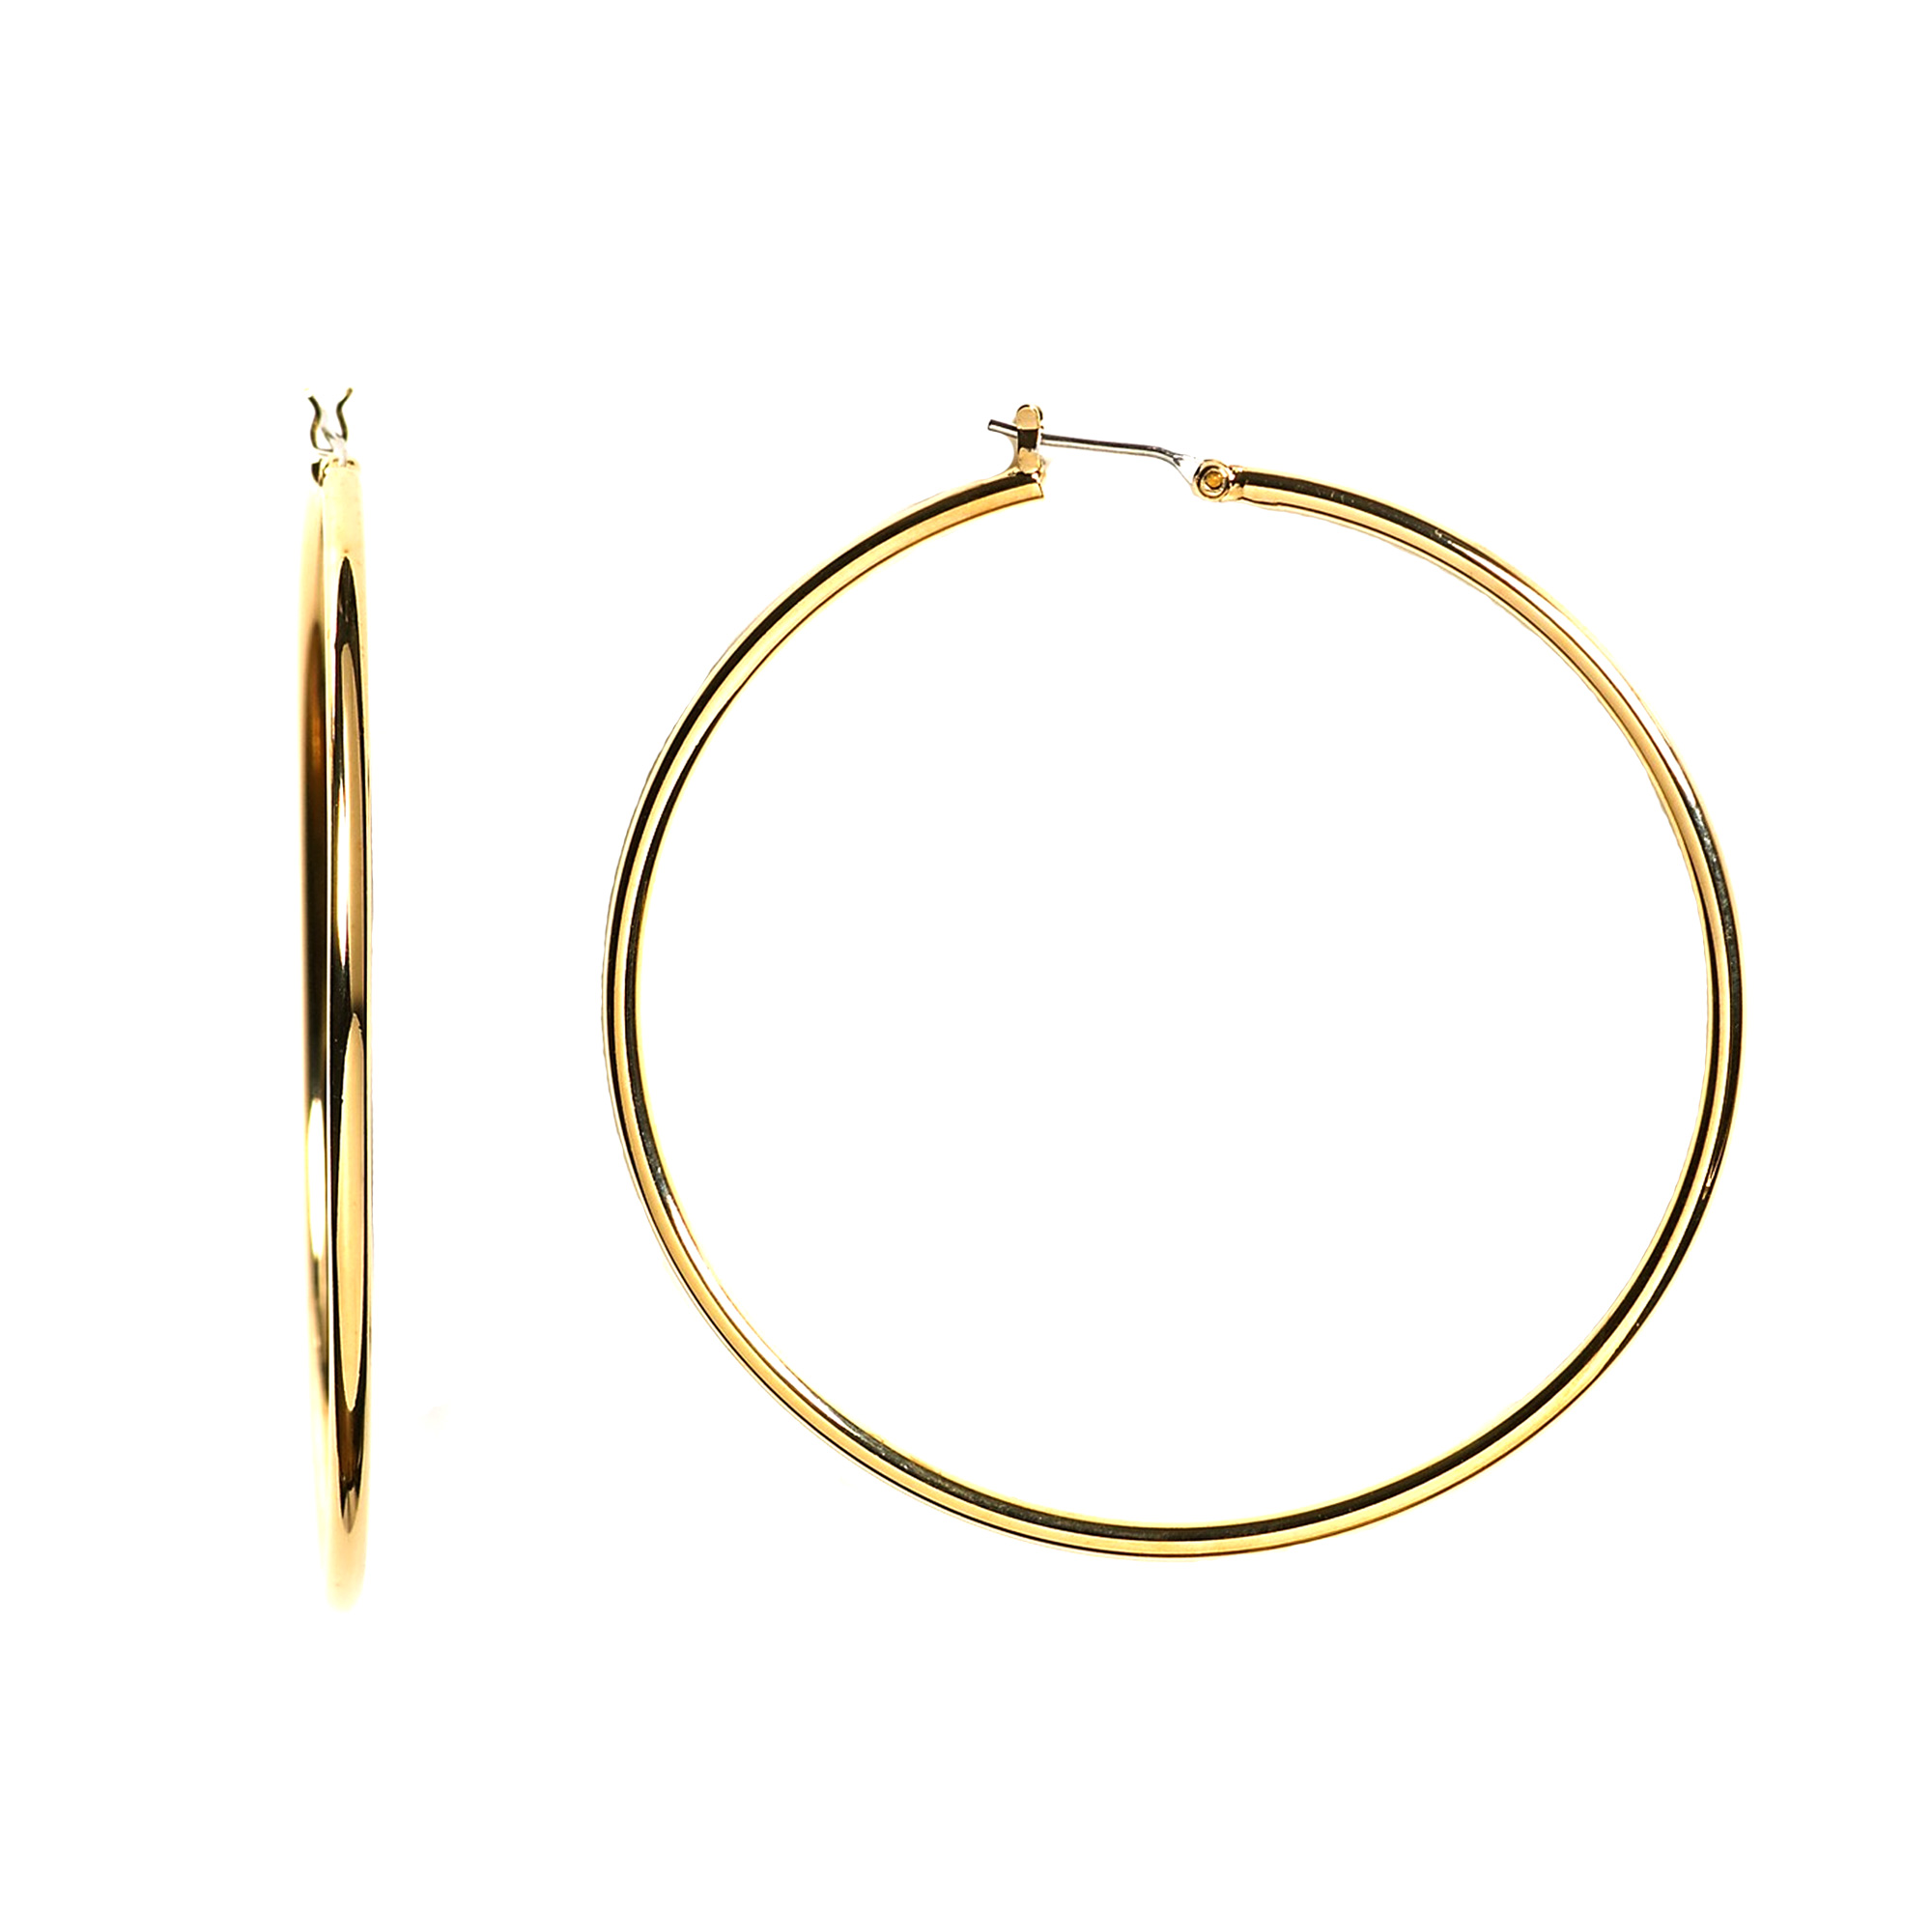 10k Yellow Gold 1.5mm Shiny Round Tube Hoop Earrings, Diameter 40mm Complete your jewelry collection with a gorgeous pair of 10k gold hoop earrings. Whether you prefer large bohemian look or tiny orbs, you'll discover plenty of sizes to match your style. These earrings have a secure snap post clasp making them easy to wear and remove.